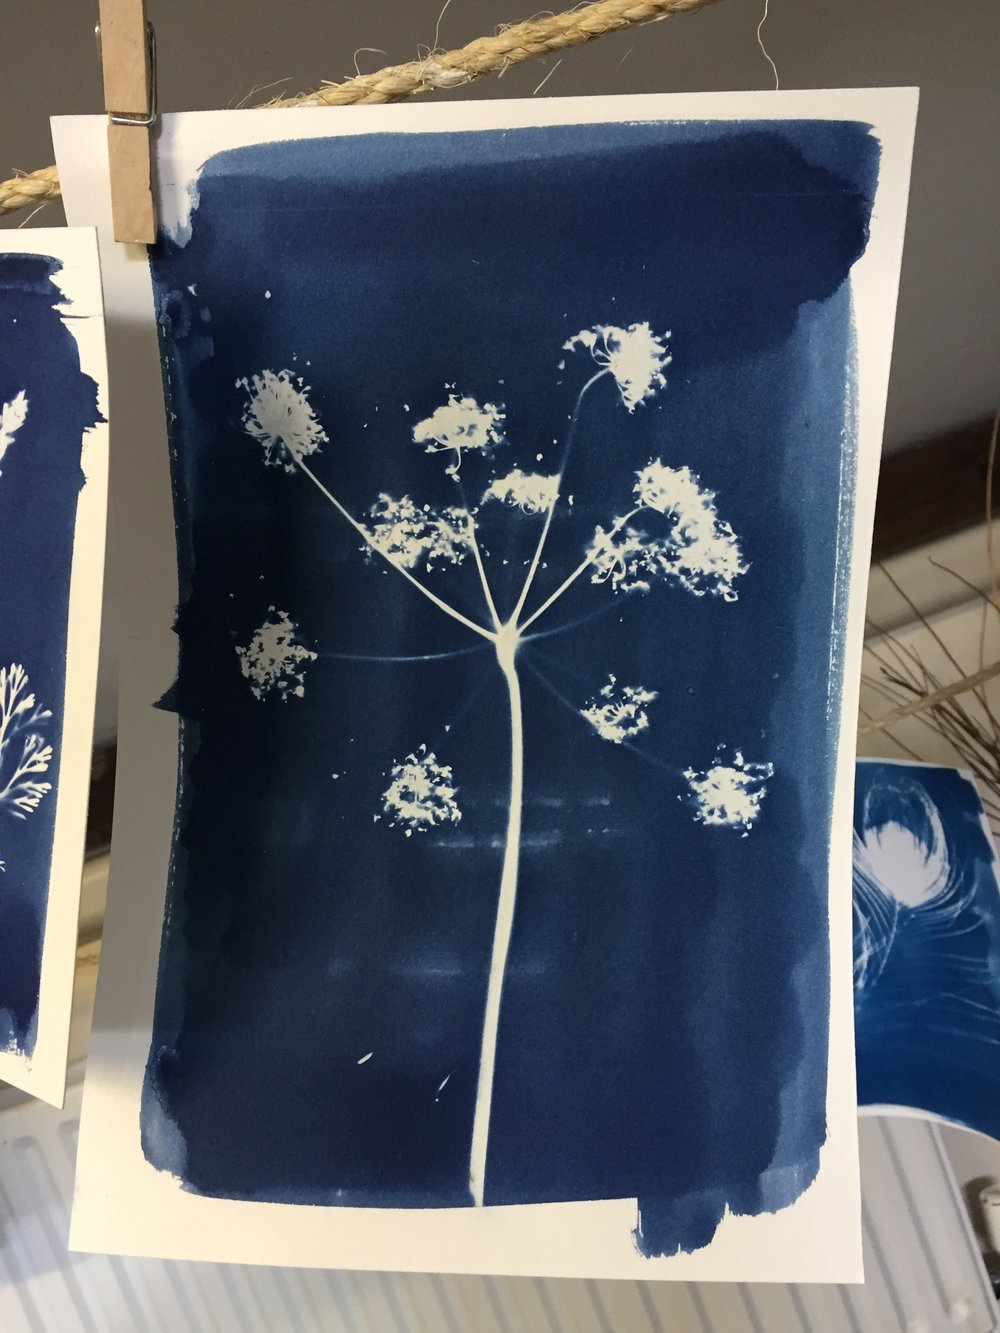 Booking includes a starter kit